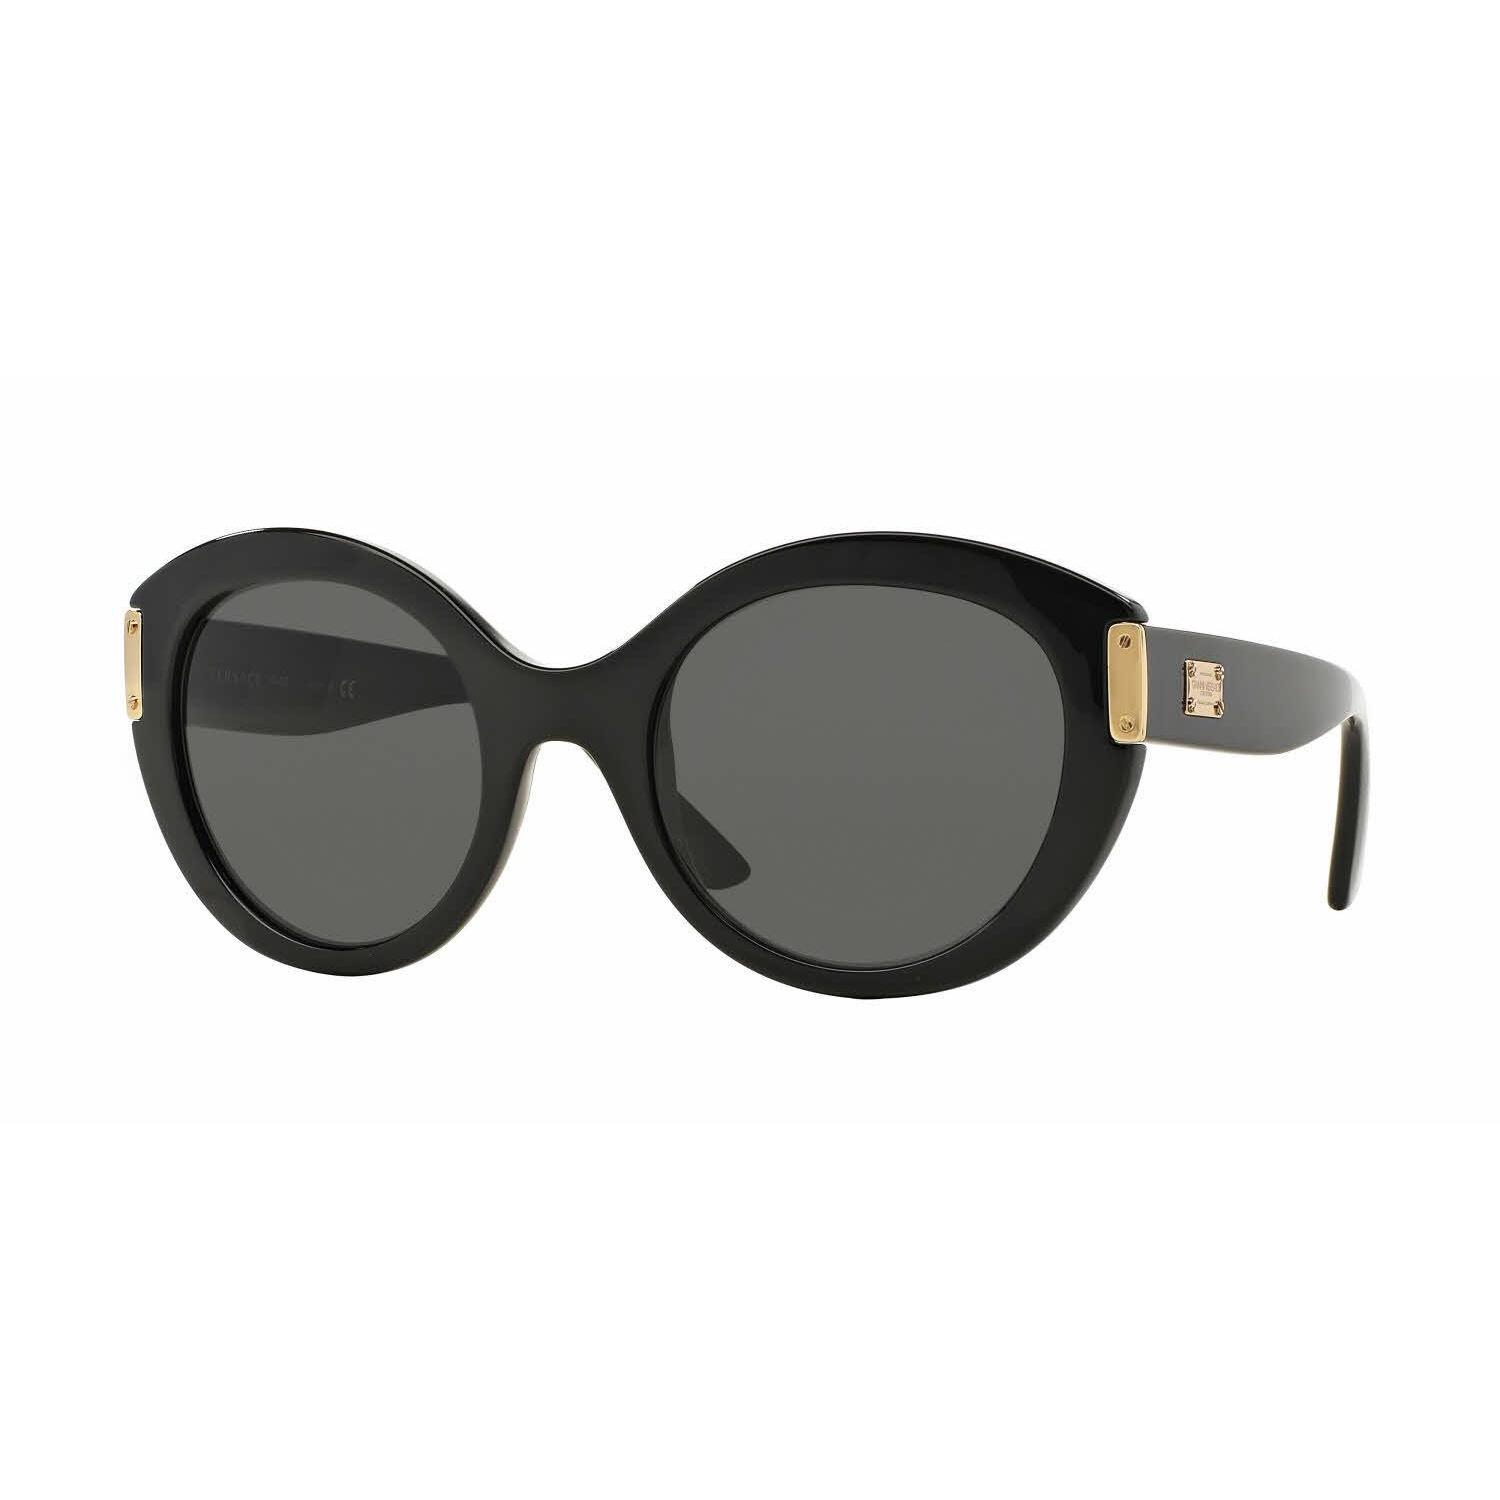 2c3877641cfb4 Shop Versace Women VE4310 GB1 87 Black Plastic Round Sunglasses - Free  Shipping Today - Overstock - 13322186